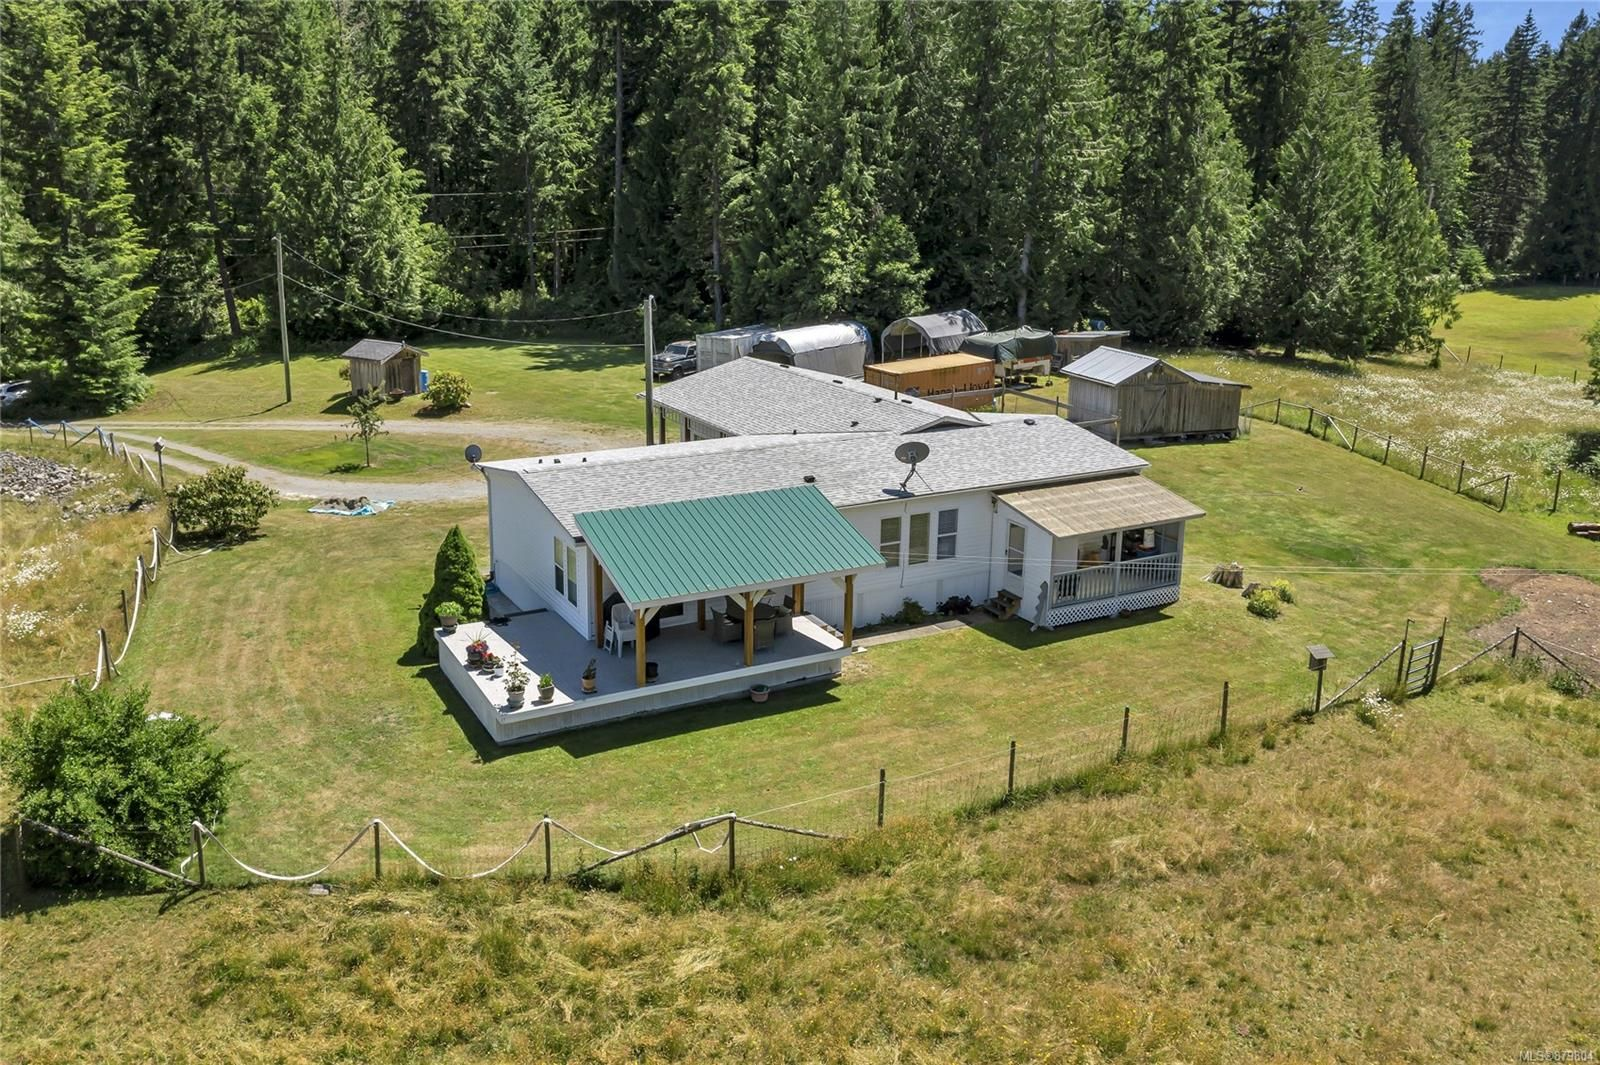 Photo 4: Photos: 3596 Riverside Rd in : ML Cobble Hill Manufactured Home for sale (Malahat & Area)  : MLS®# 879804